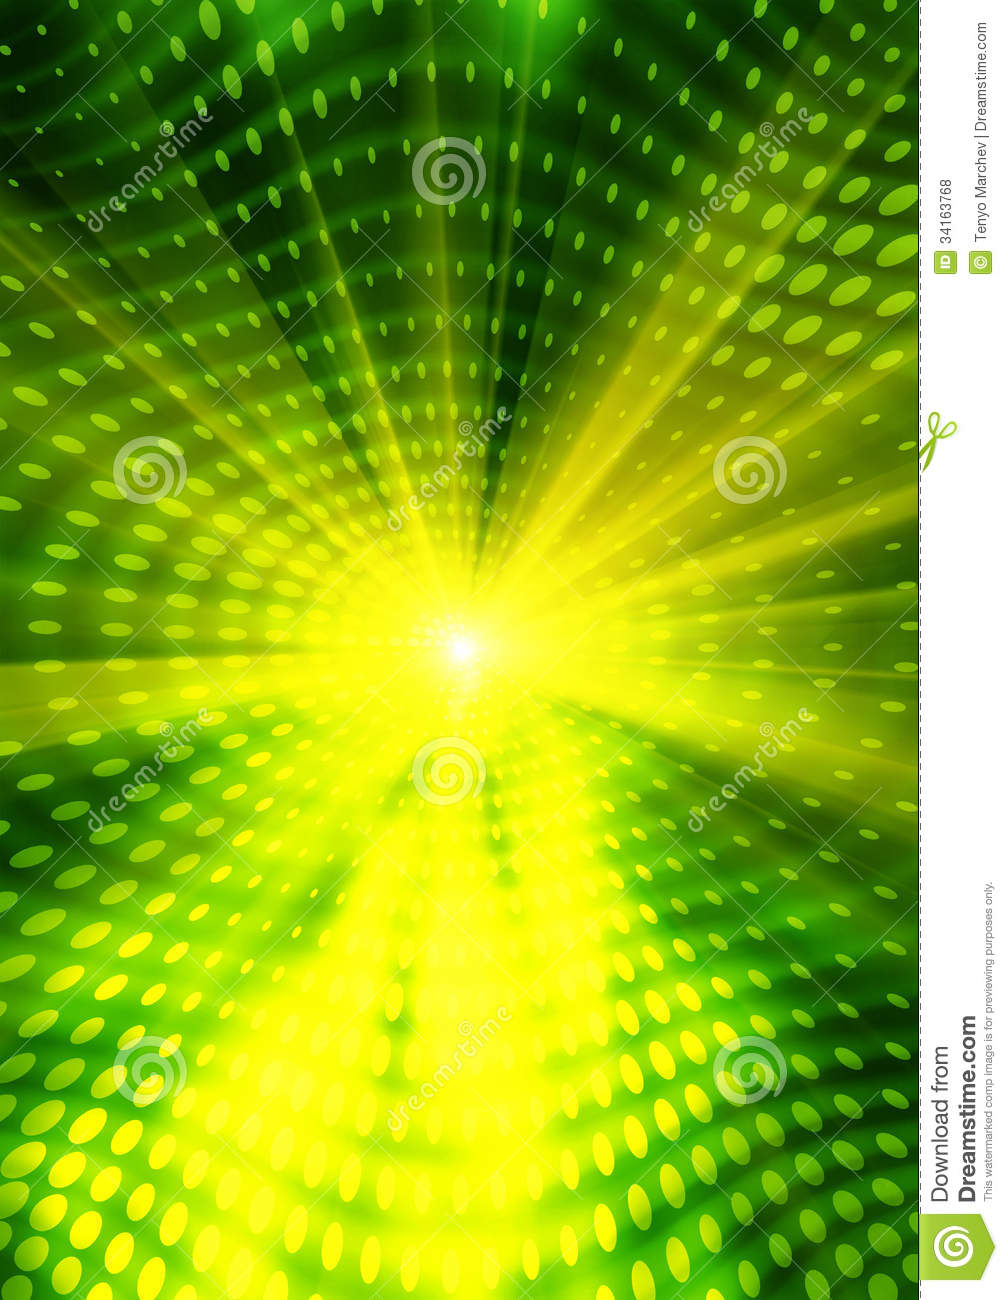 Background design Yellow And Green Background Design